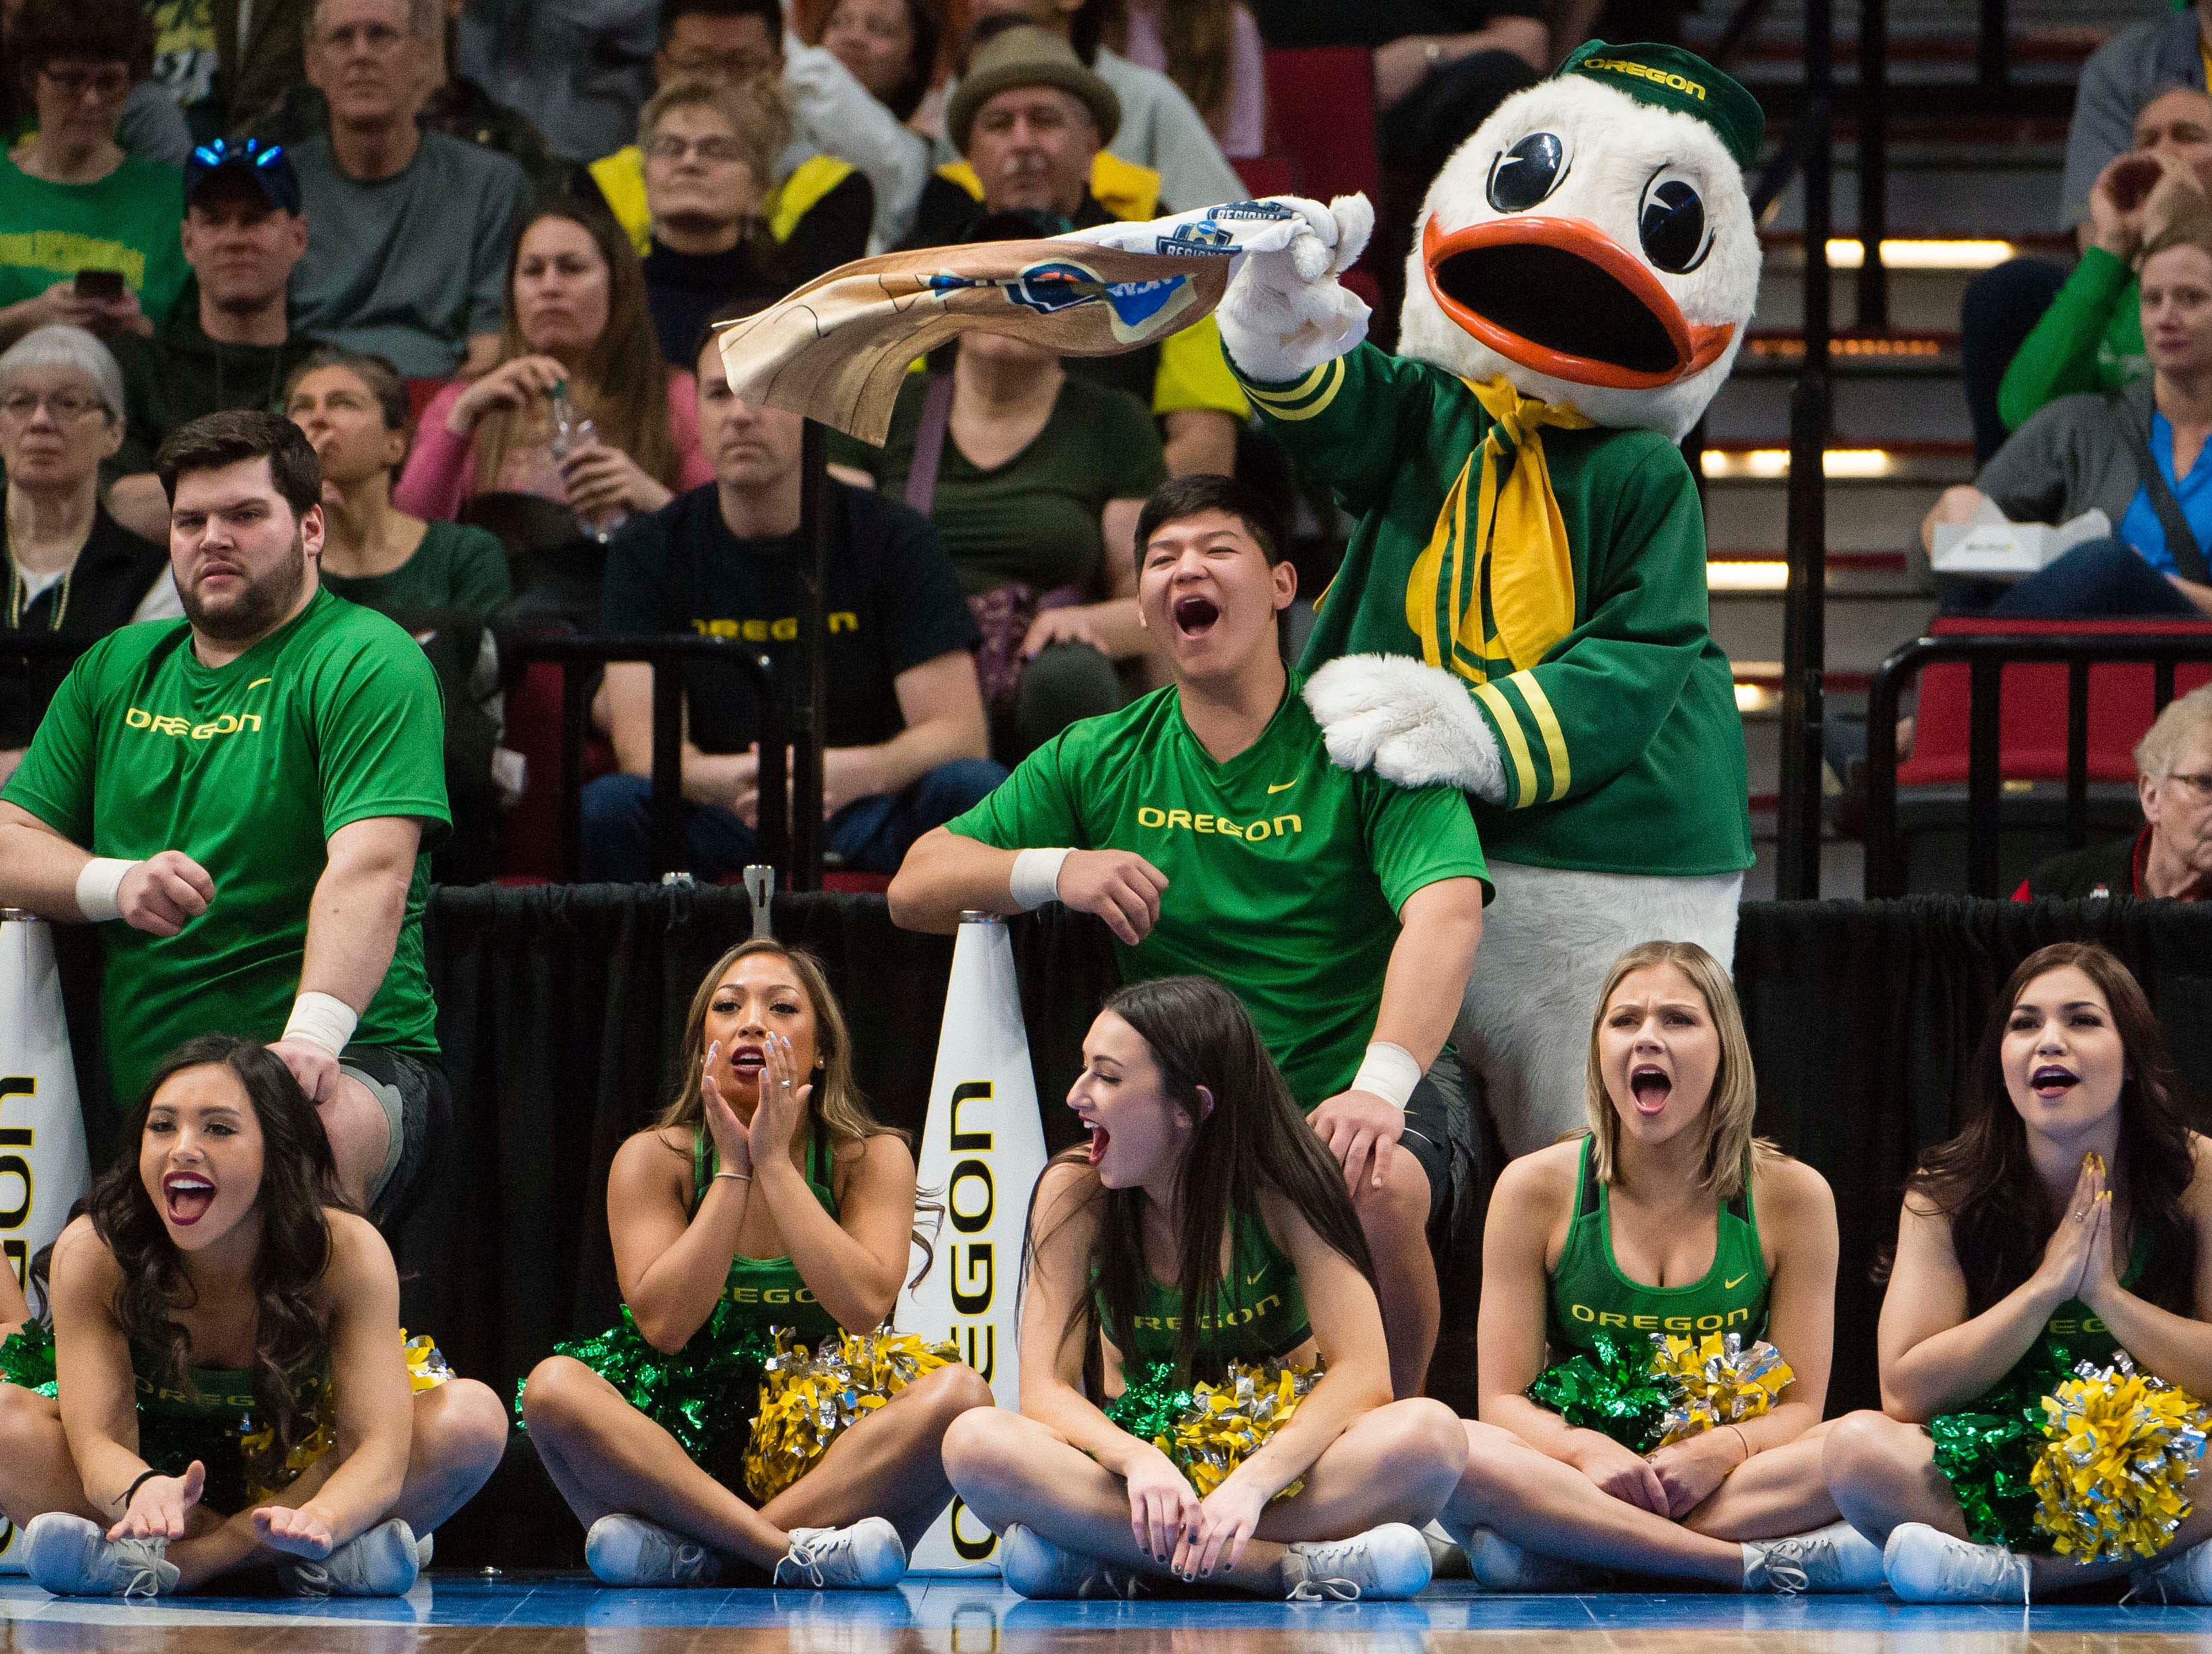 The Oregon Ducks cheer team scream to distract a Mississippi State Bulldogs player at the free throw line in the championship game of the Portland regional in the women's 2019 NCAA Tournament at Moda Center. The Oregon Ducks beat the Mississippi State Bulldogs 88-84.